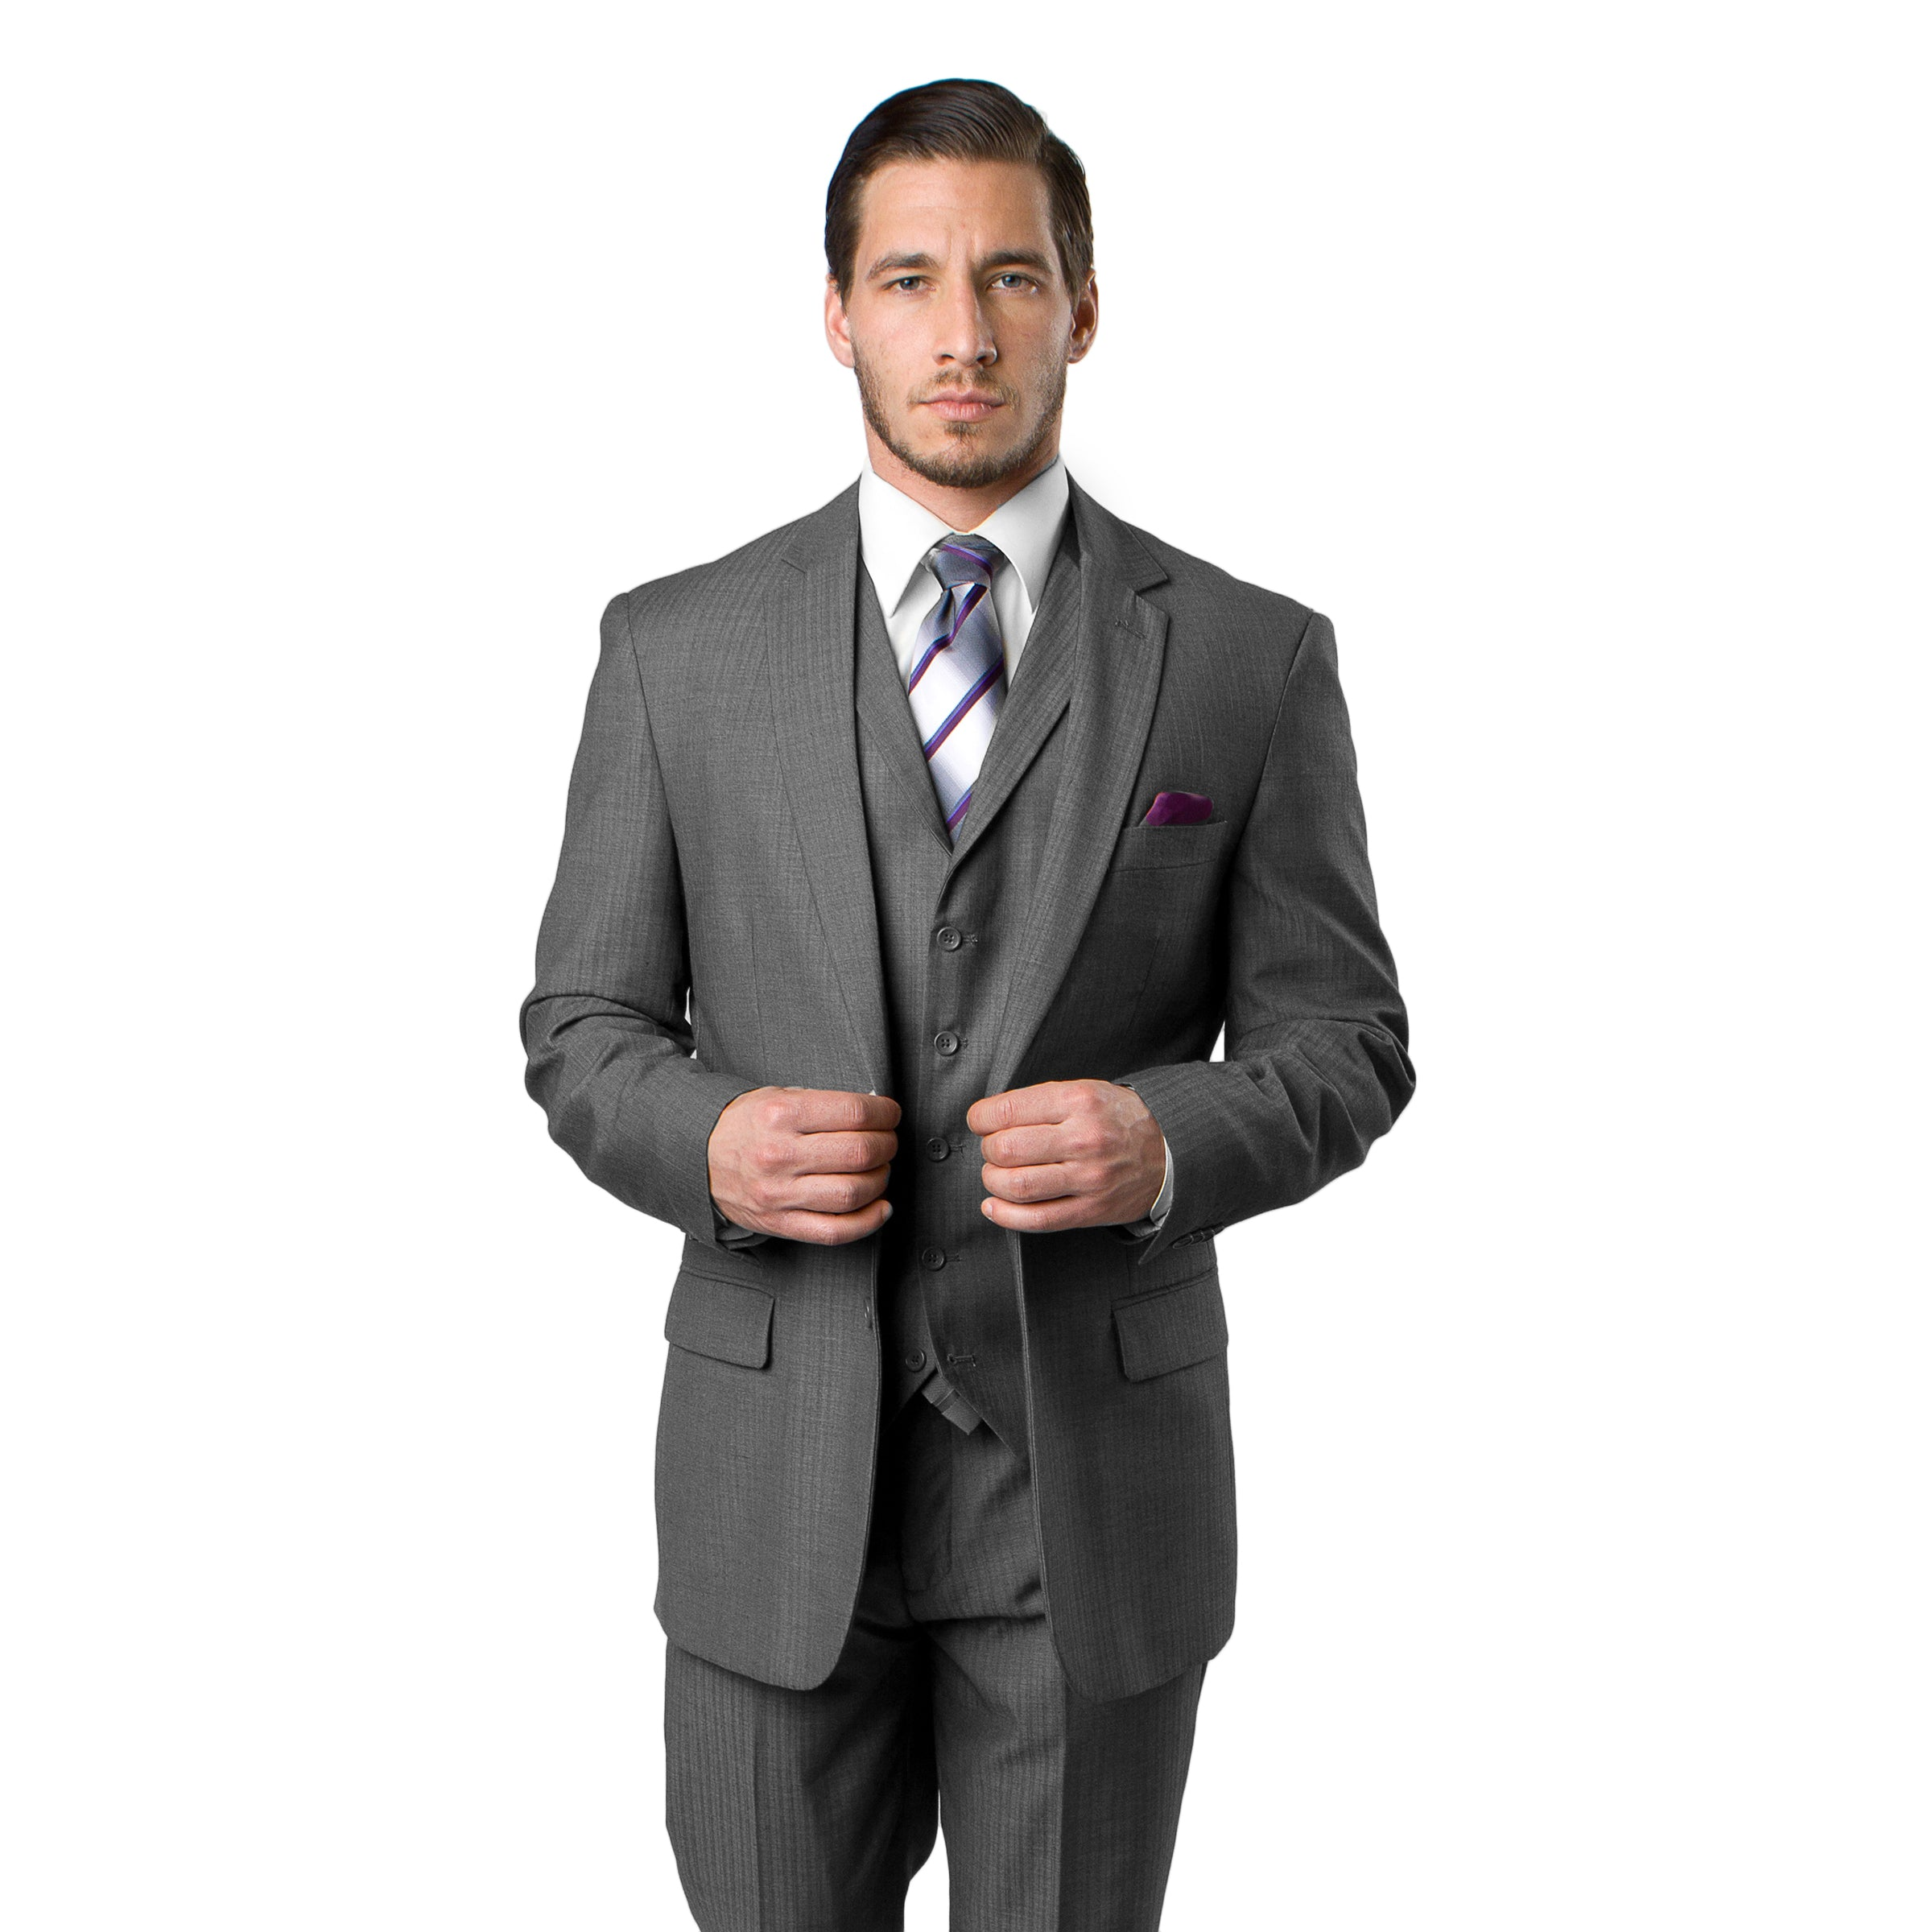 Black Suit For Men Formal Suits For All Ocassions M230-01